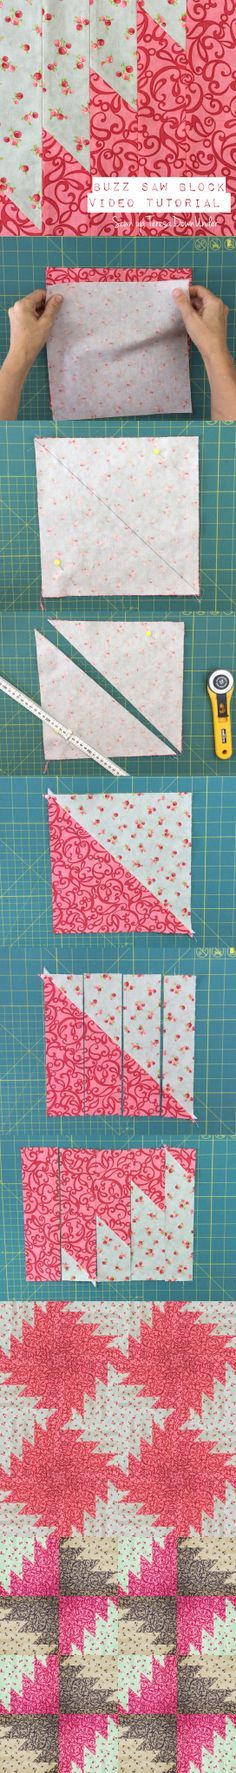 Buzz saw quilt block